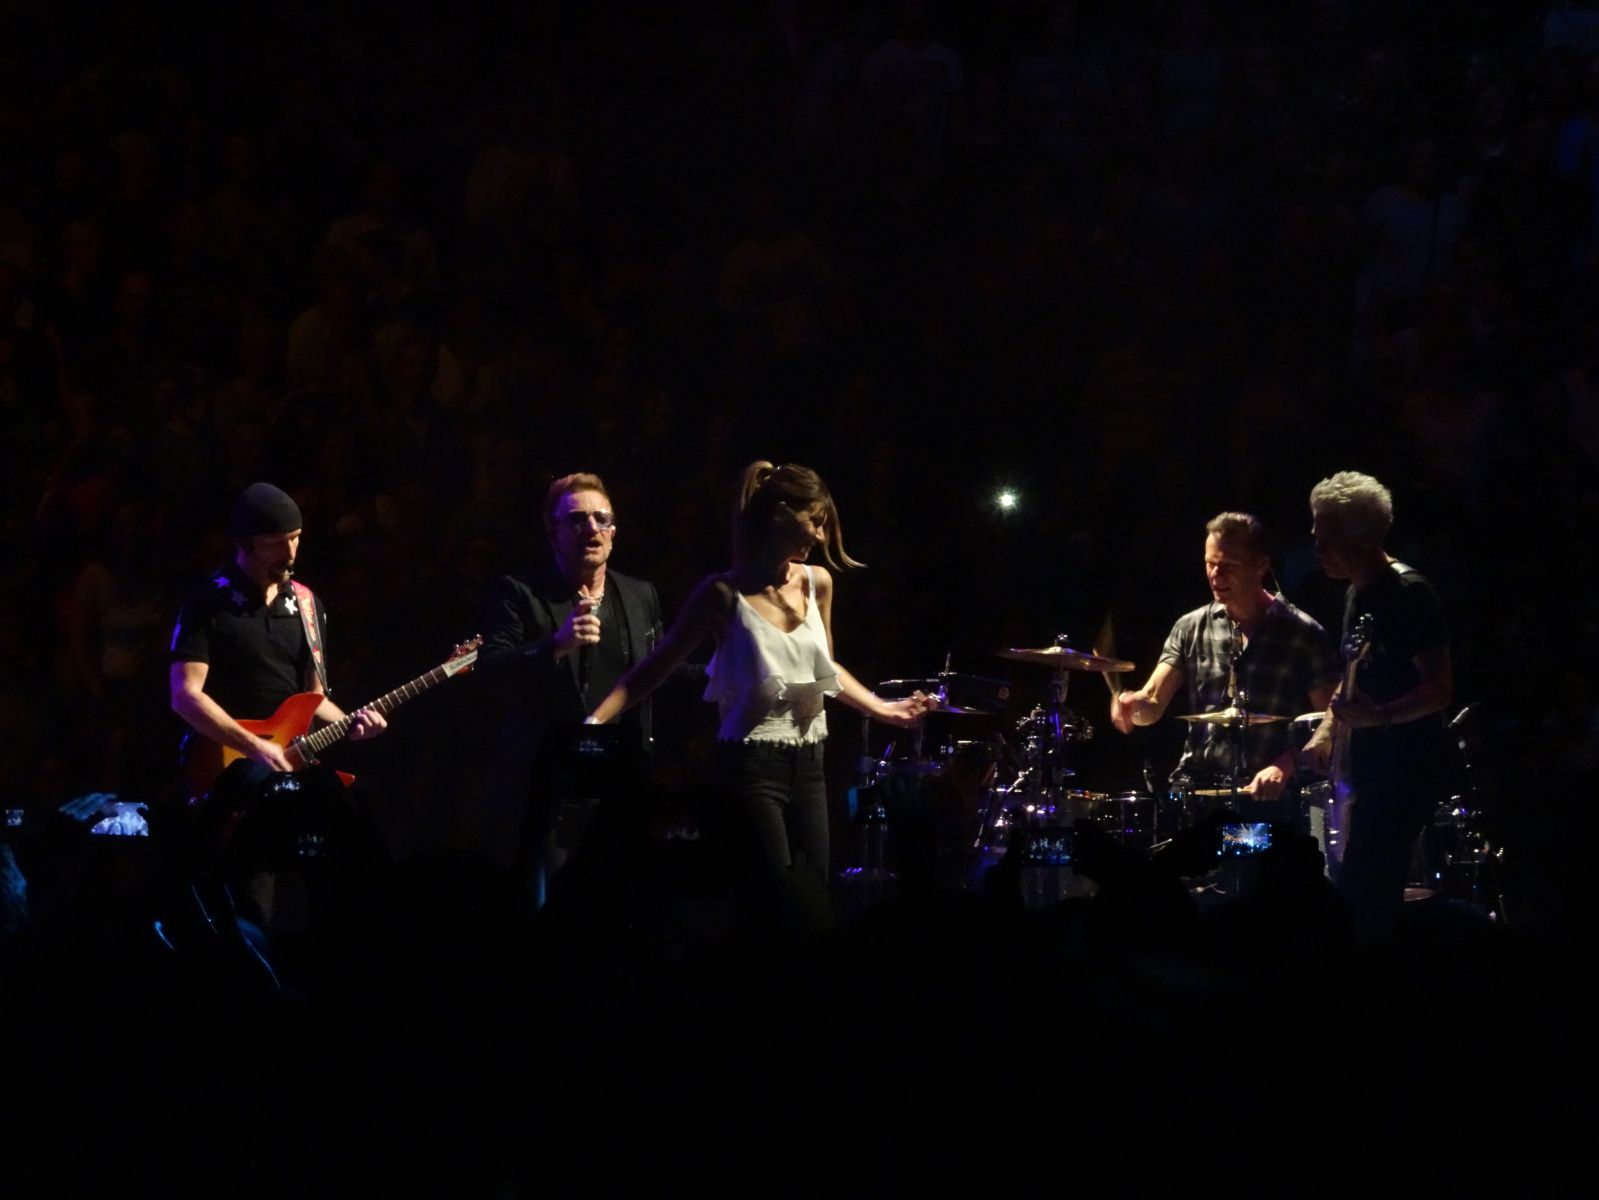 On stage with U2 in Berlin :)